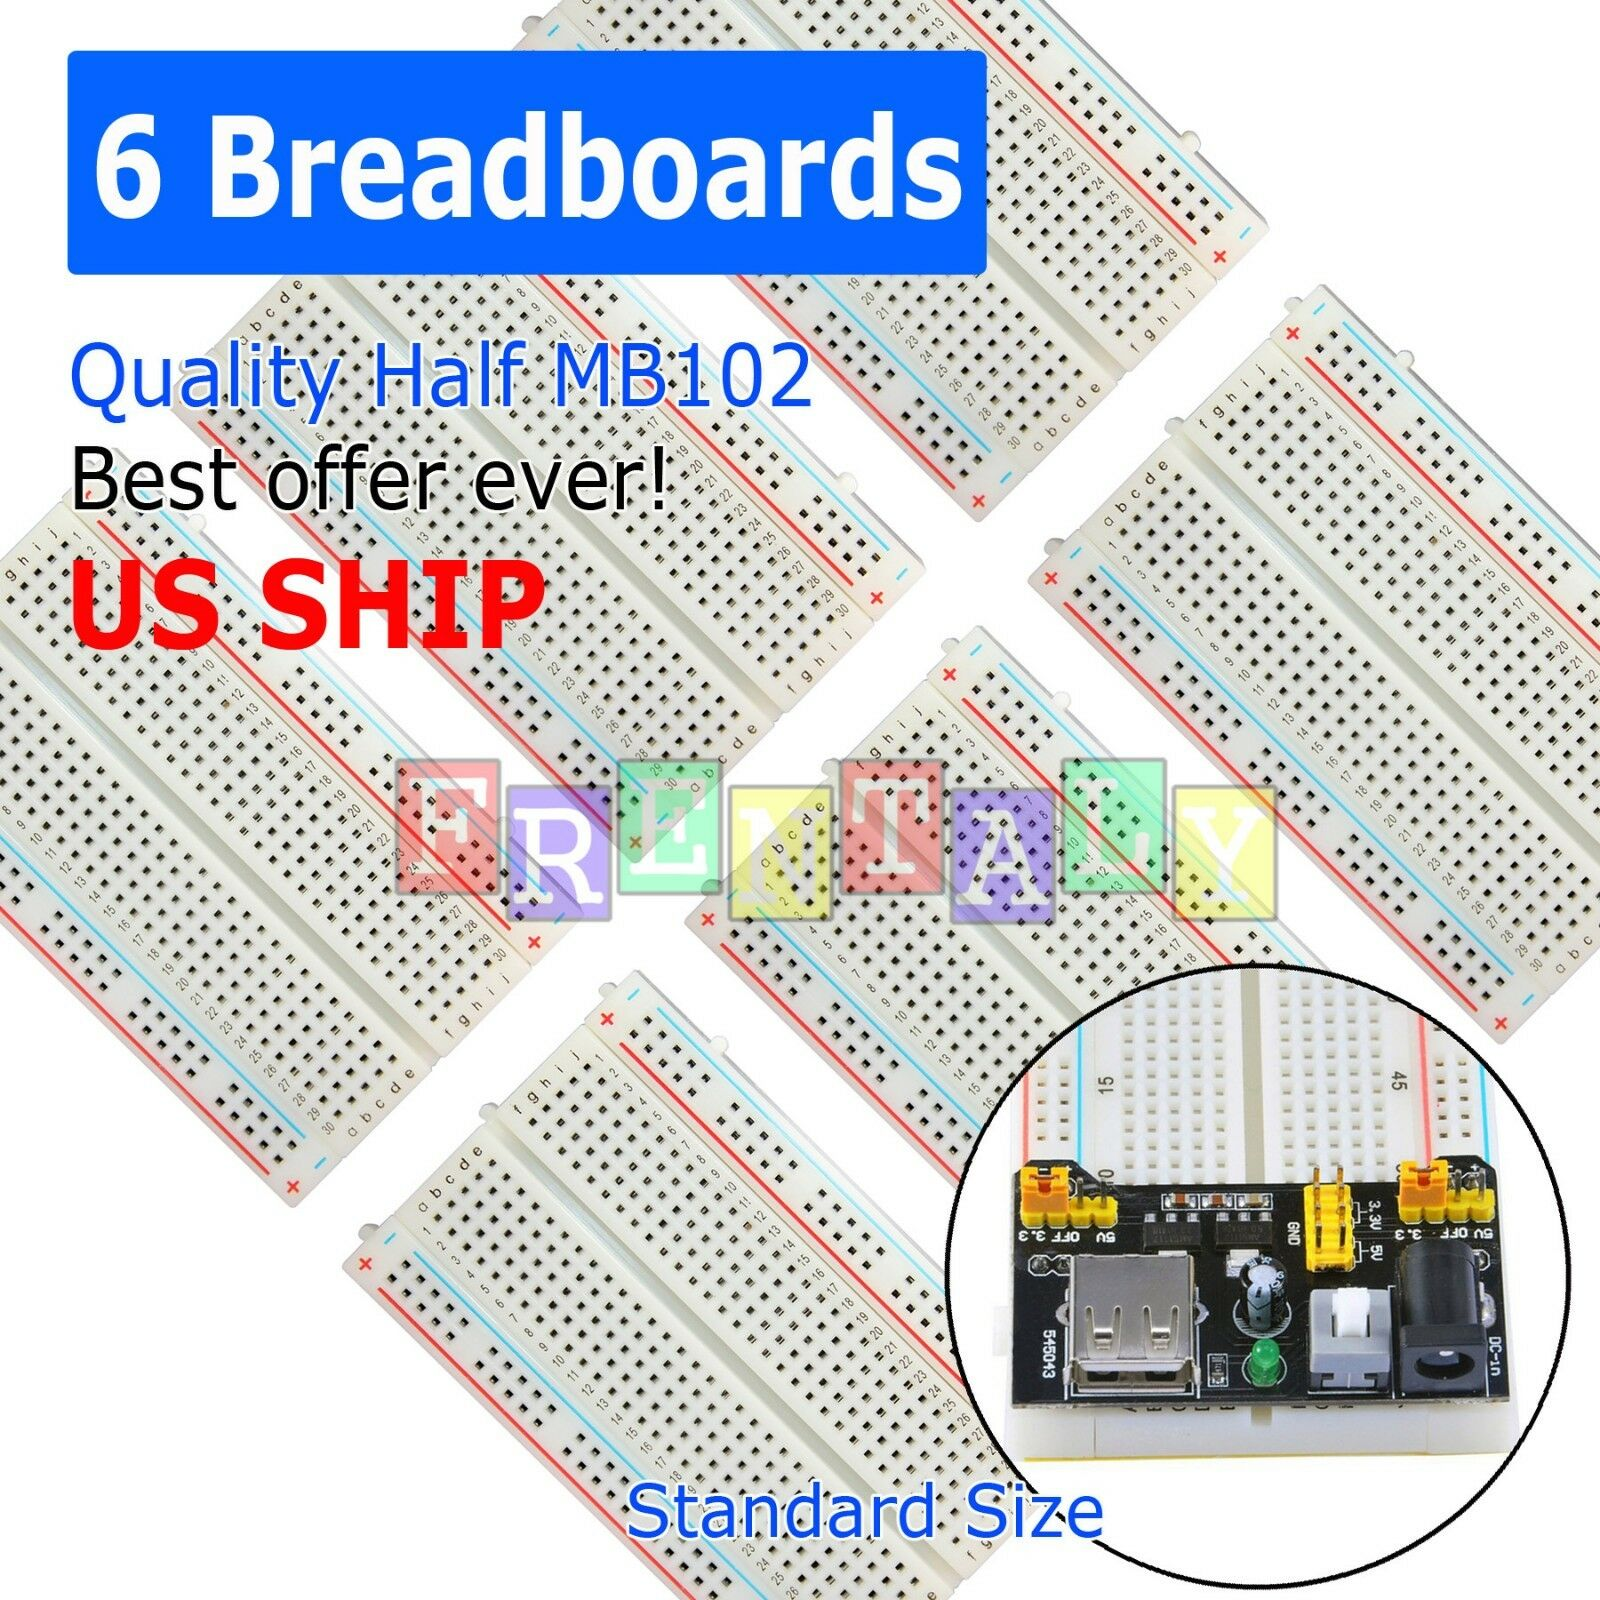 6x Mini 400 Points Prototype Pcb Solderless Breadboard Protoboard Transparent Showing The Metal Strips For Tie 1 Of 7free Shipping See More